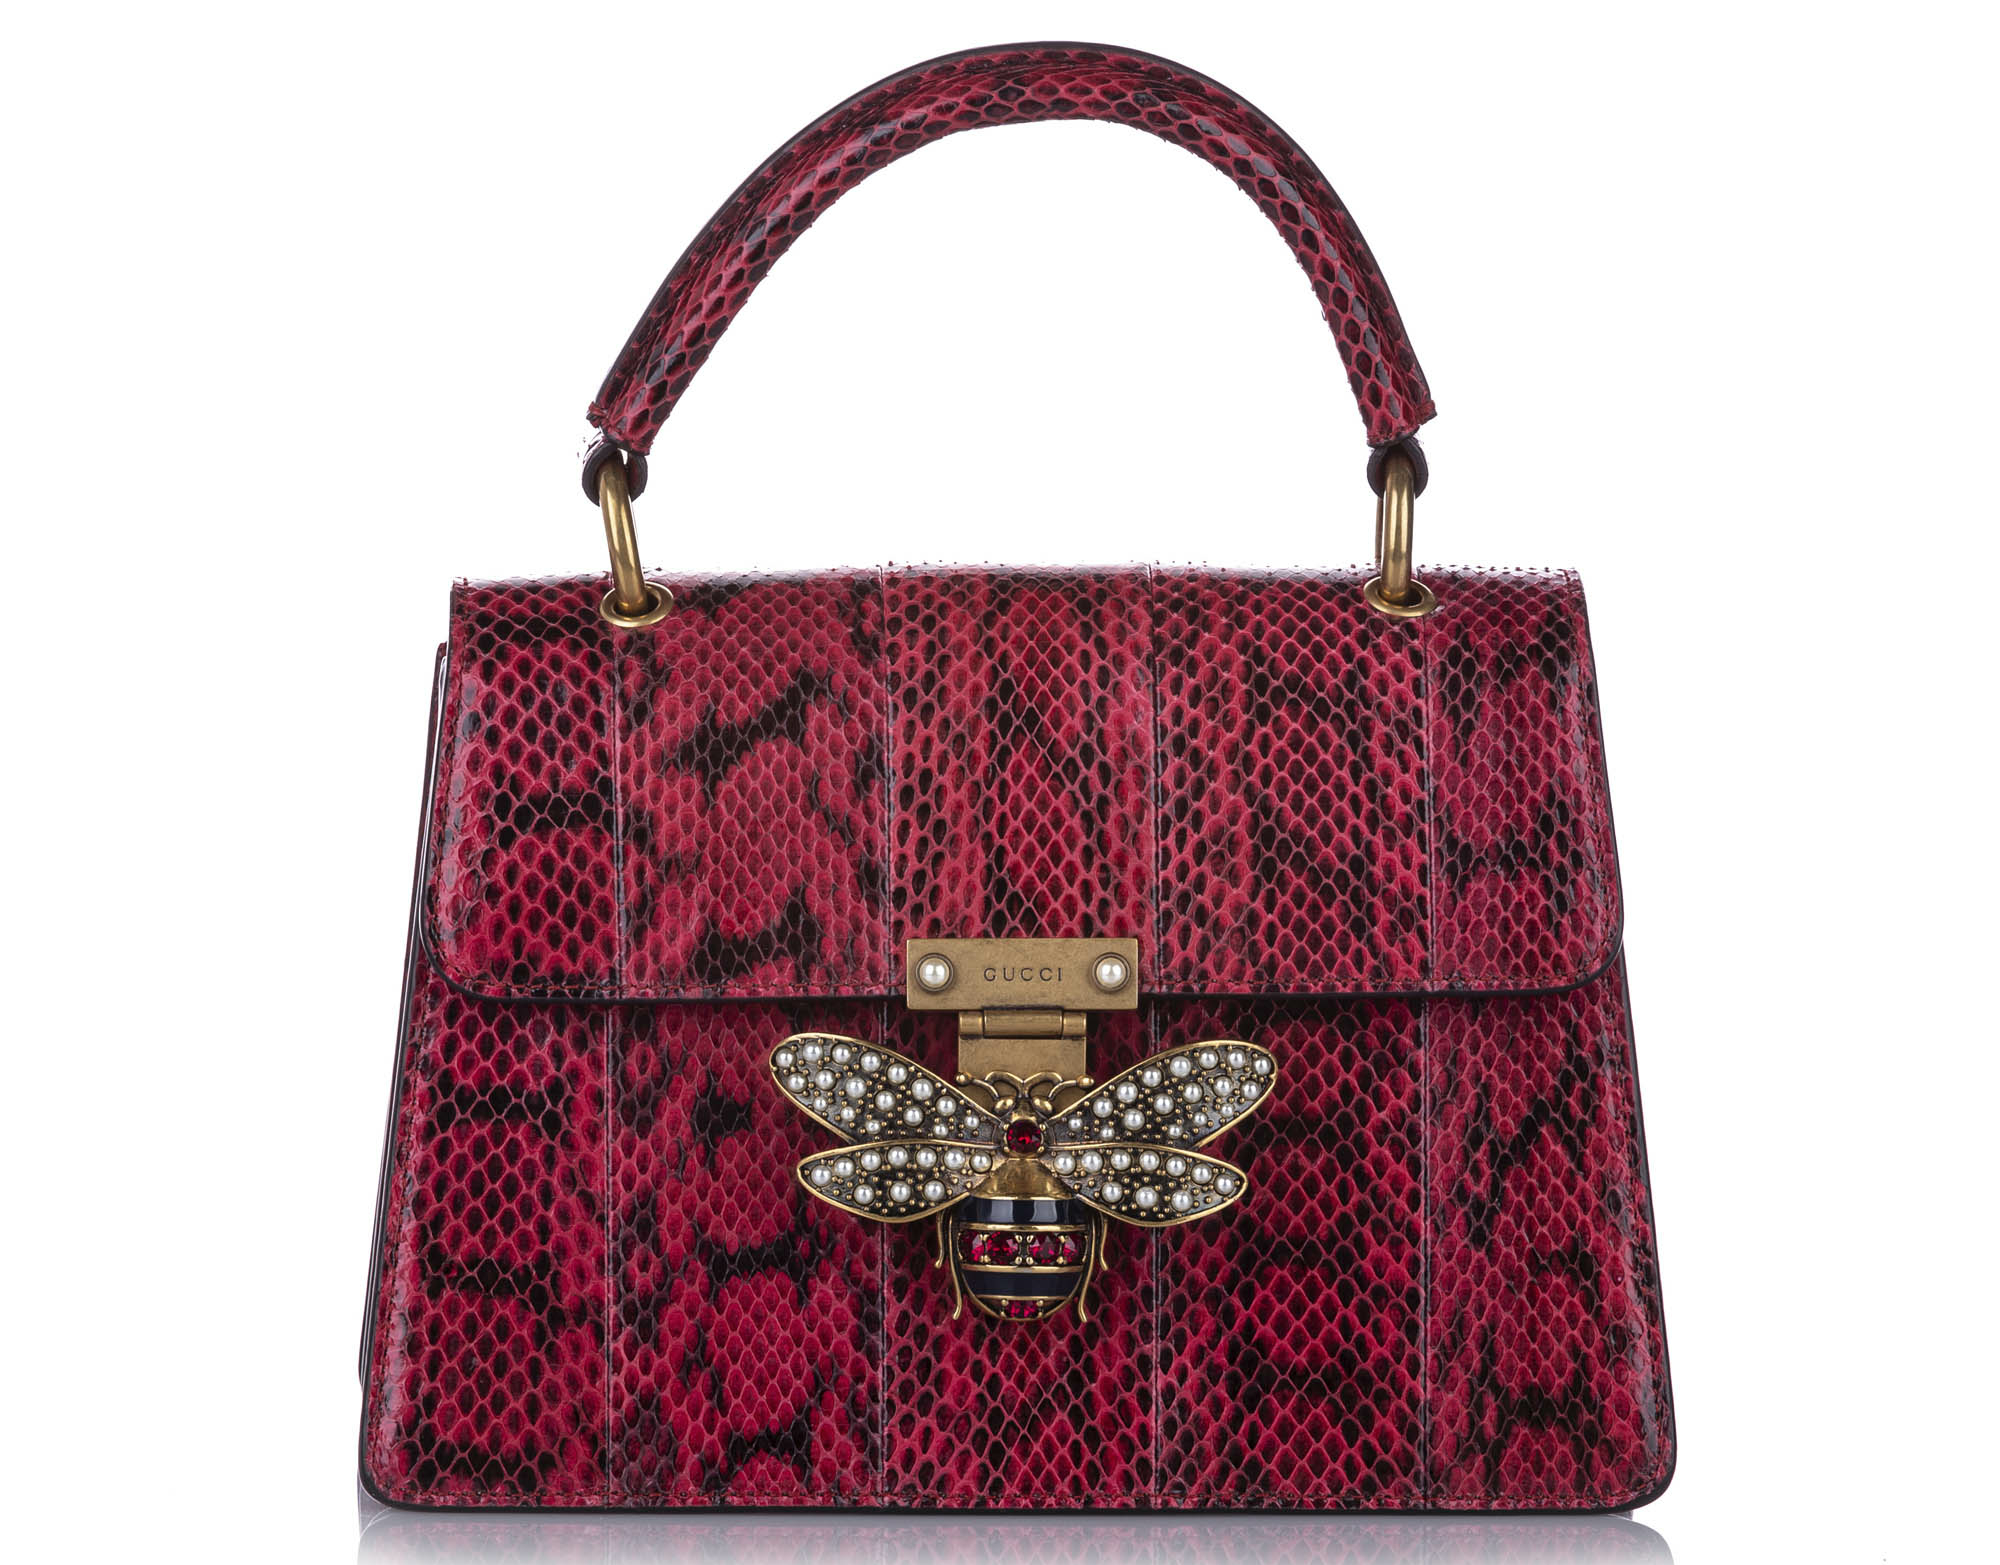 Gucci Queen Margaret Python Bag